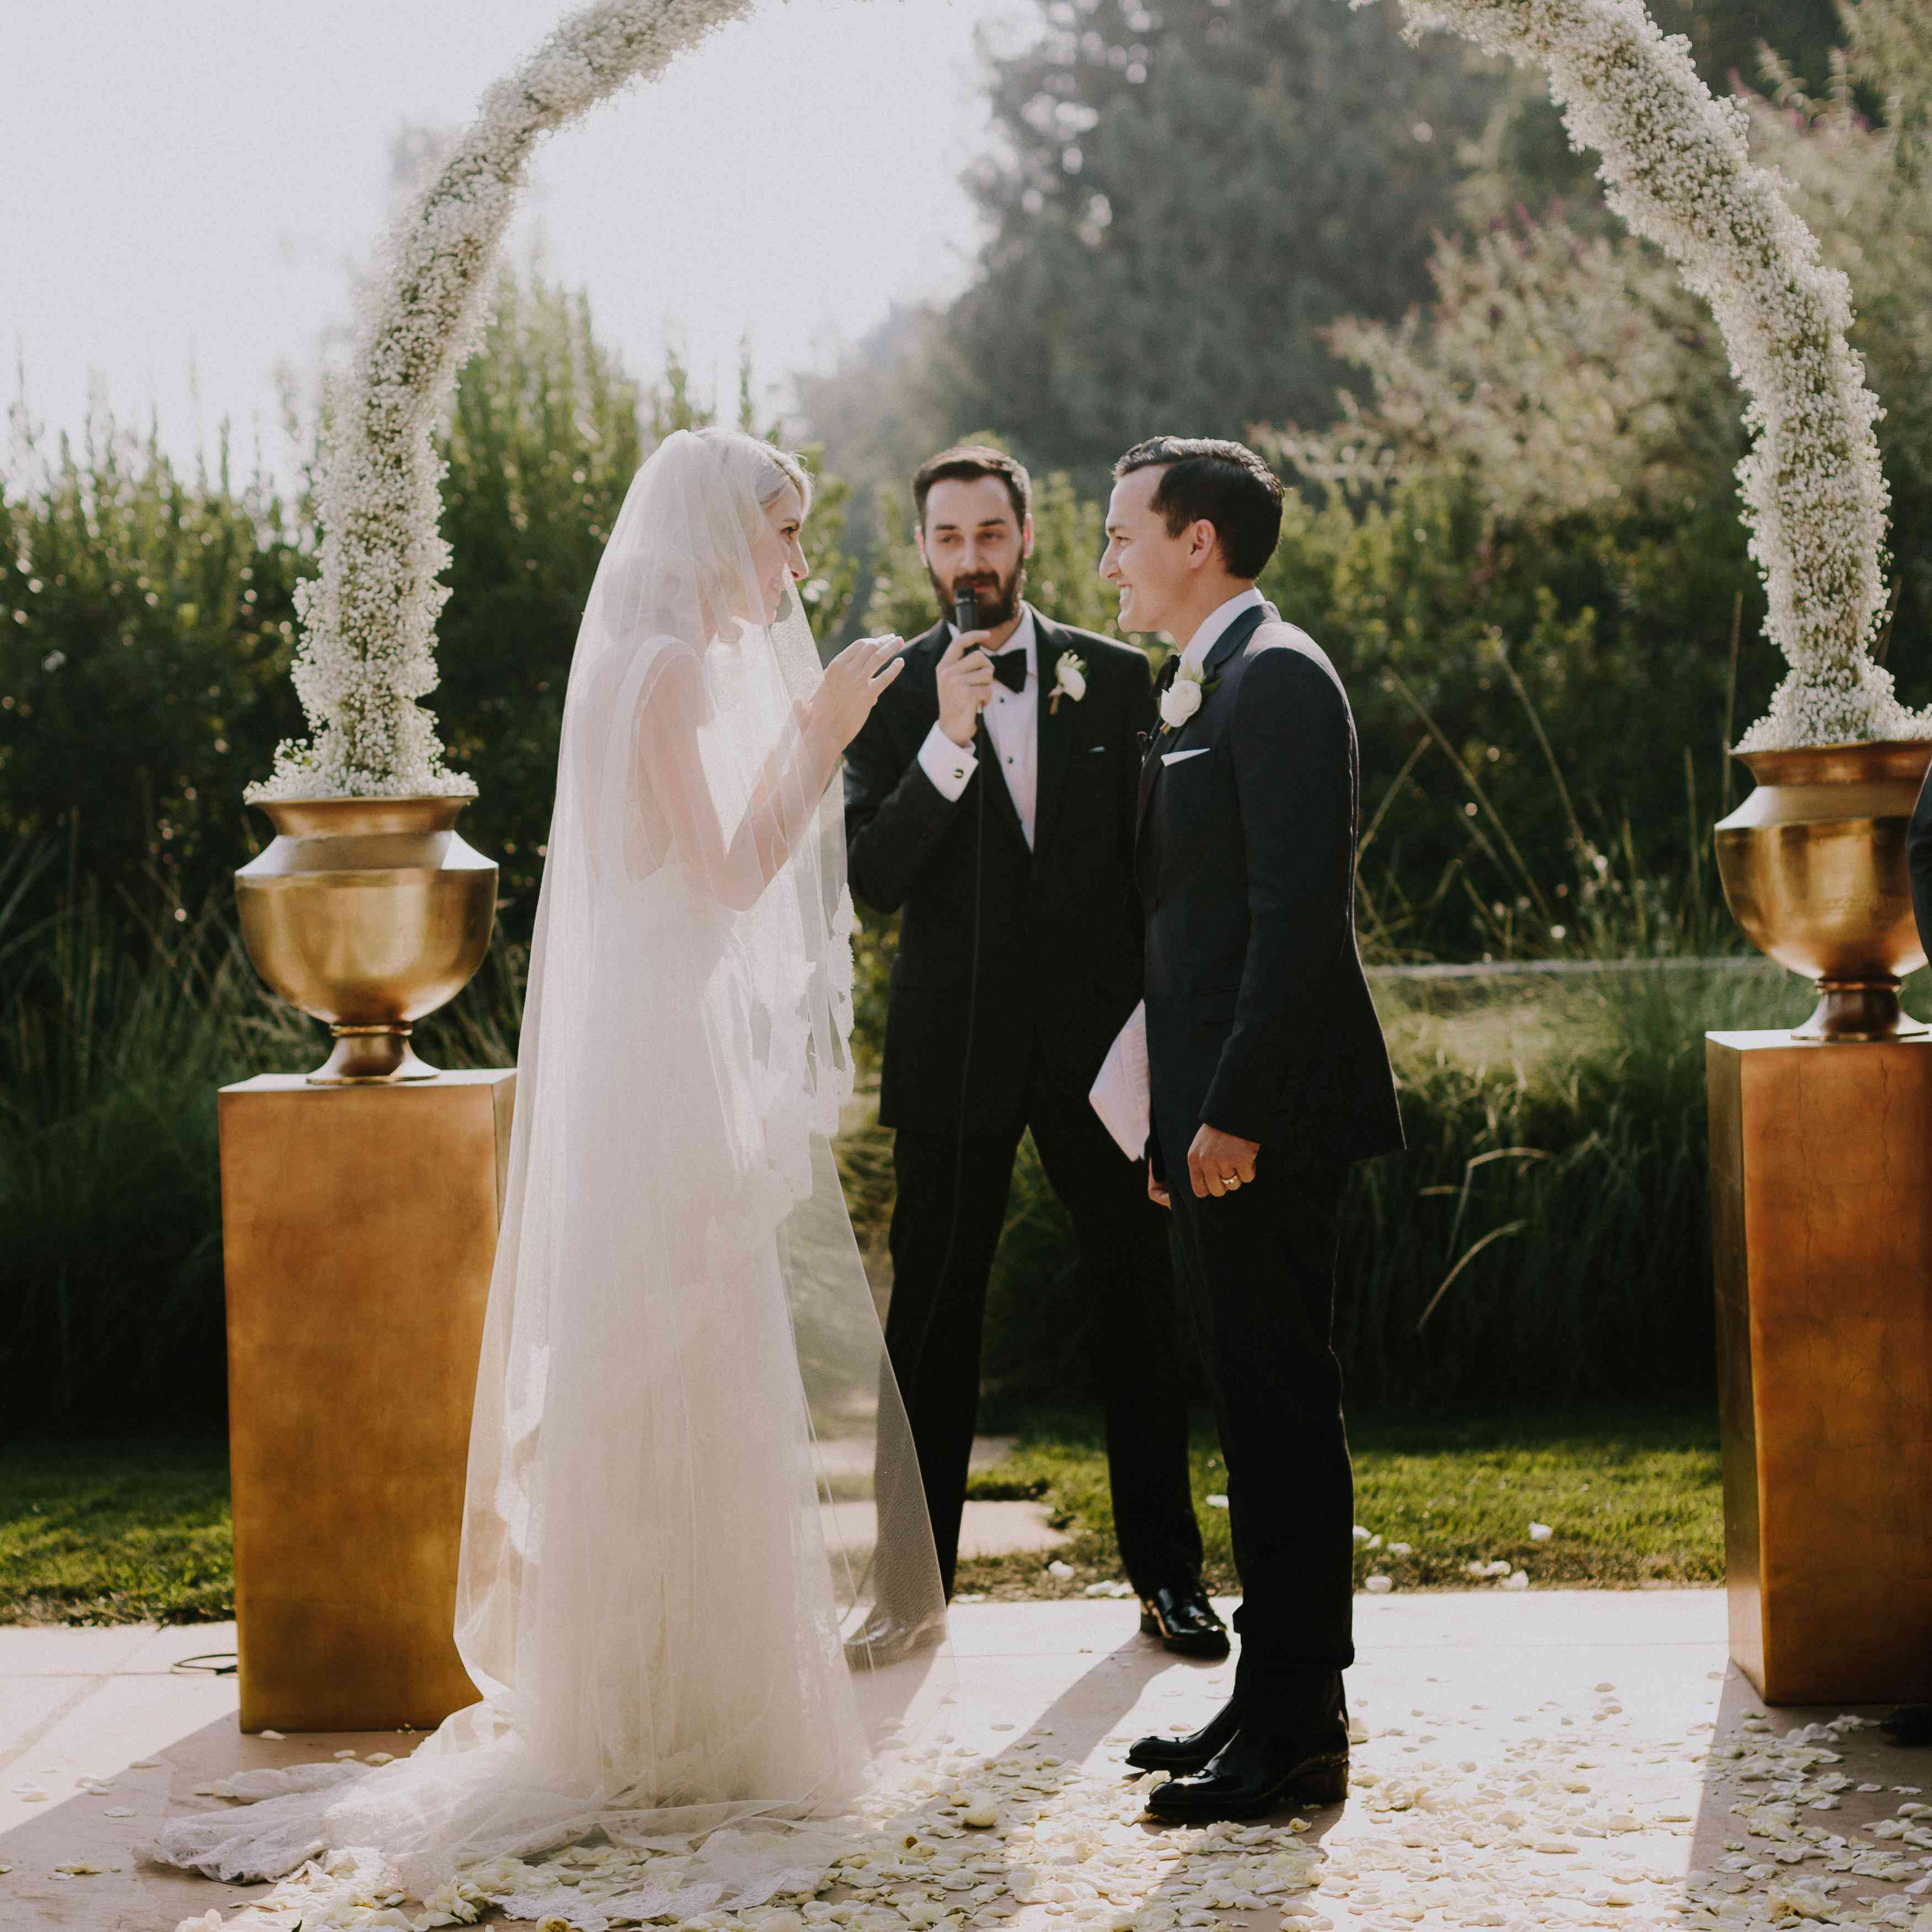 How To Perform Officiate A Wedding Ceremony